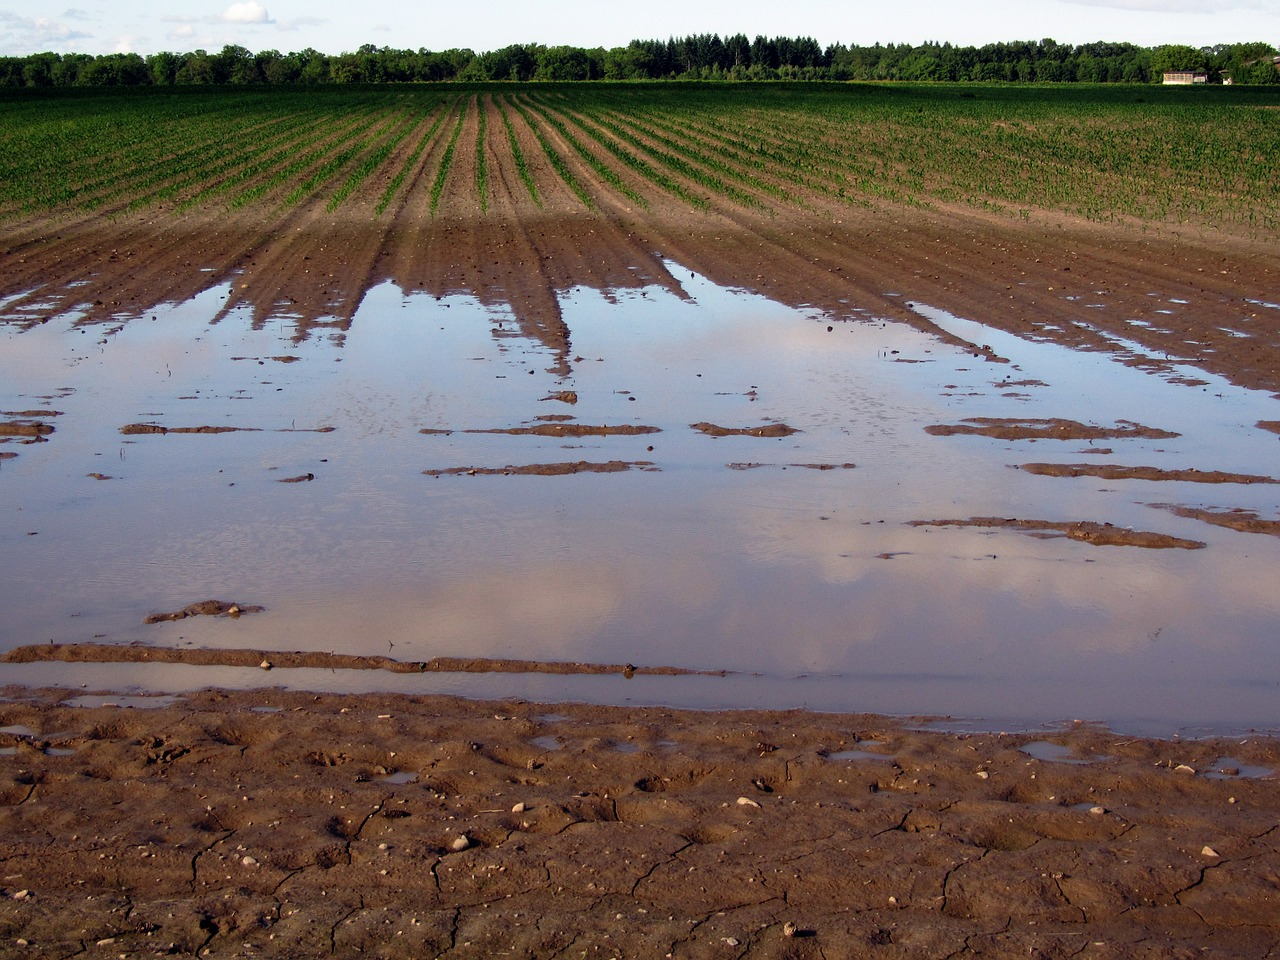 THE ECONOMIC COLLAPSE – Total Catastrophe For U.S. Corn Production: Only 30 Percent Of U.S. Corn Fields Have Been Planted